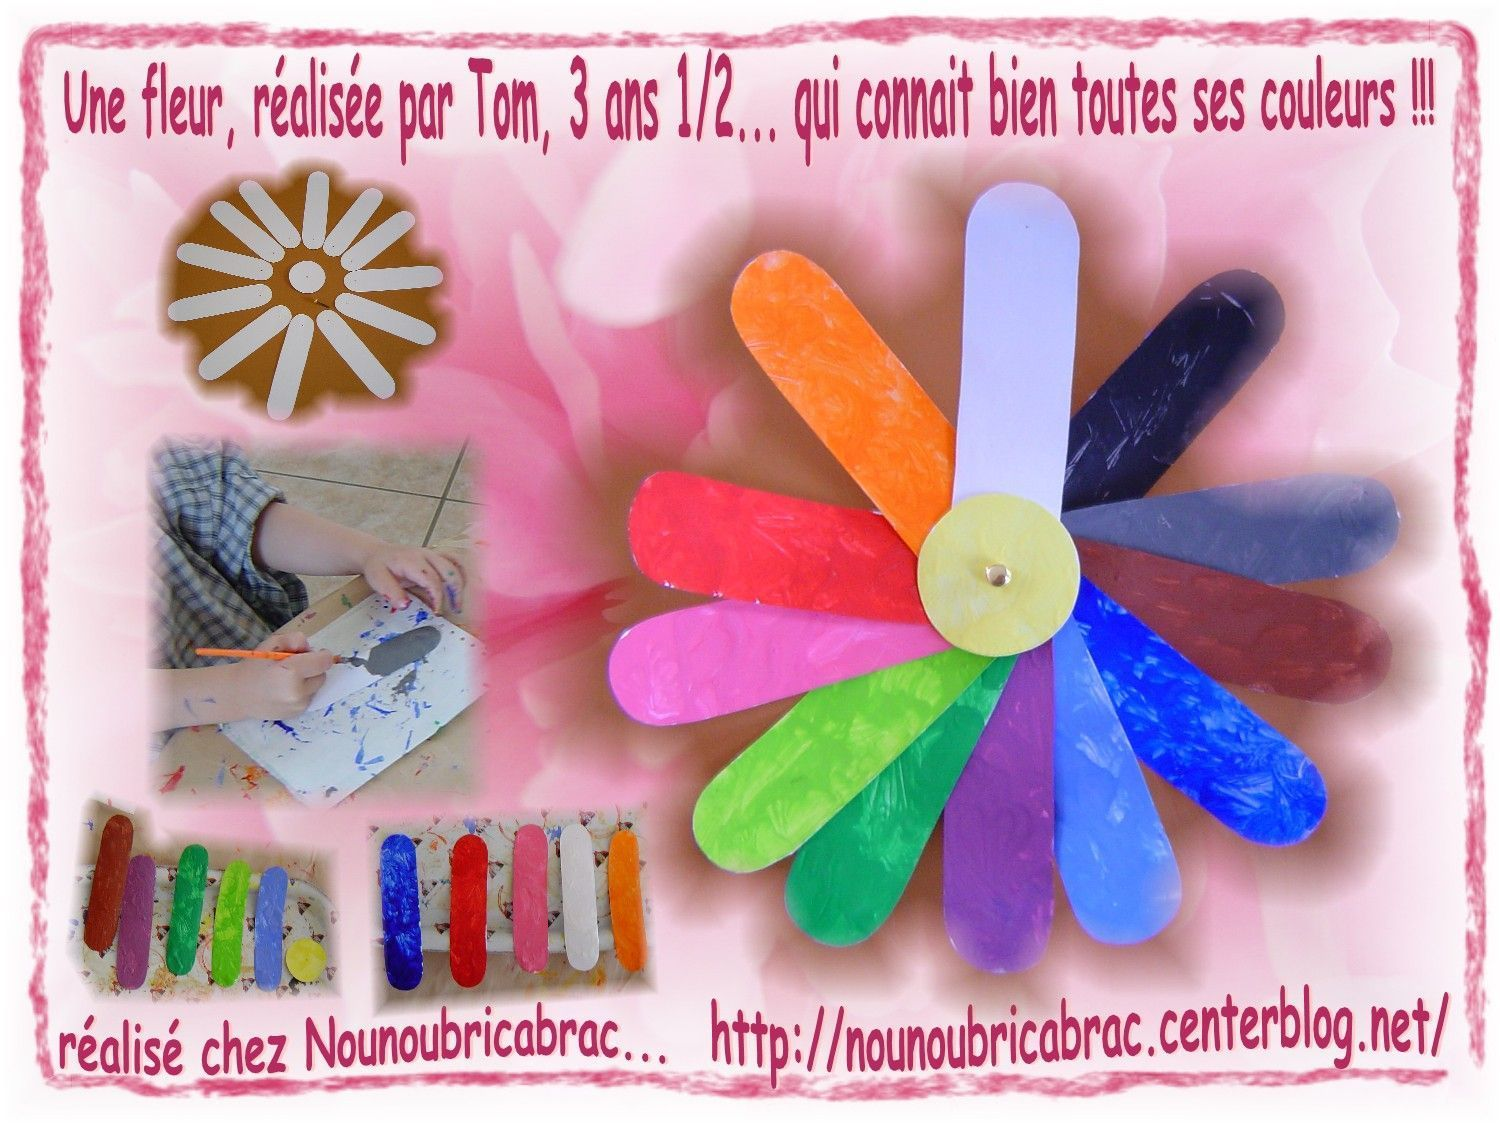 Une fleur pour apprendre les couleurs... ralise par Tom, 3 ans 1/2